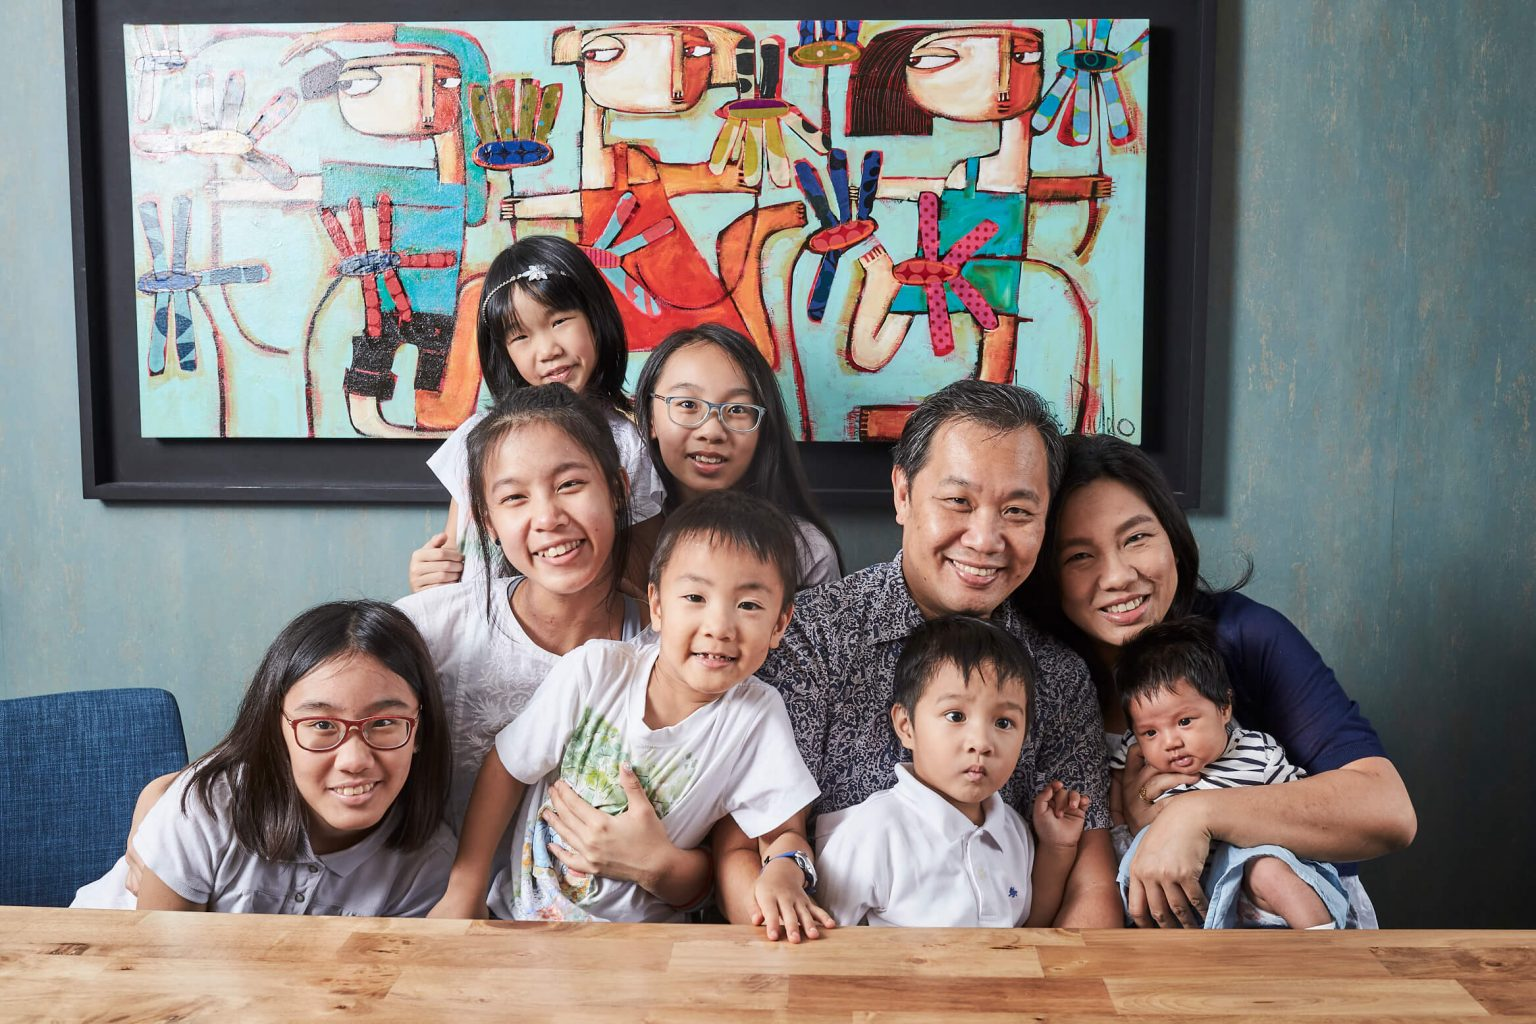 Thomson mummy shares how she raises her family of seven kids